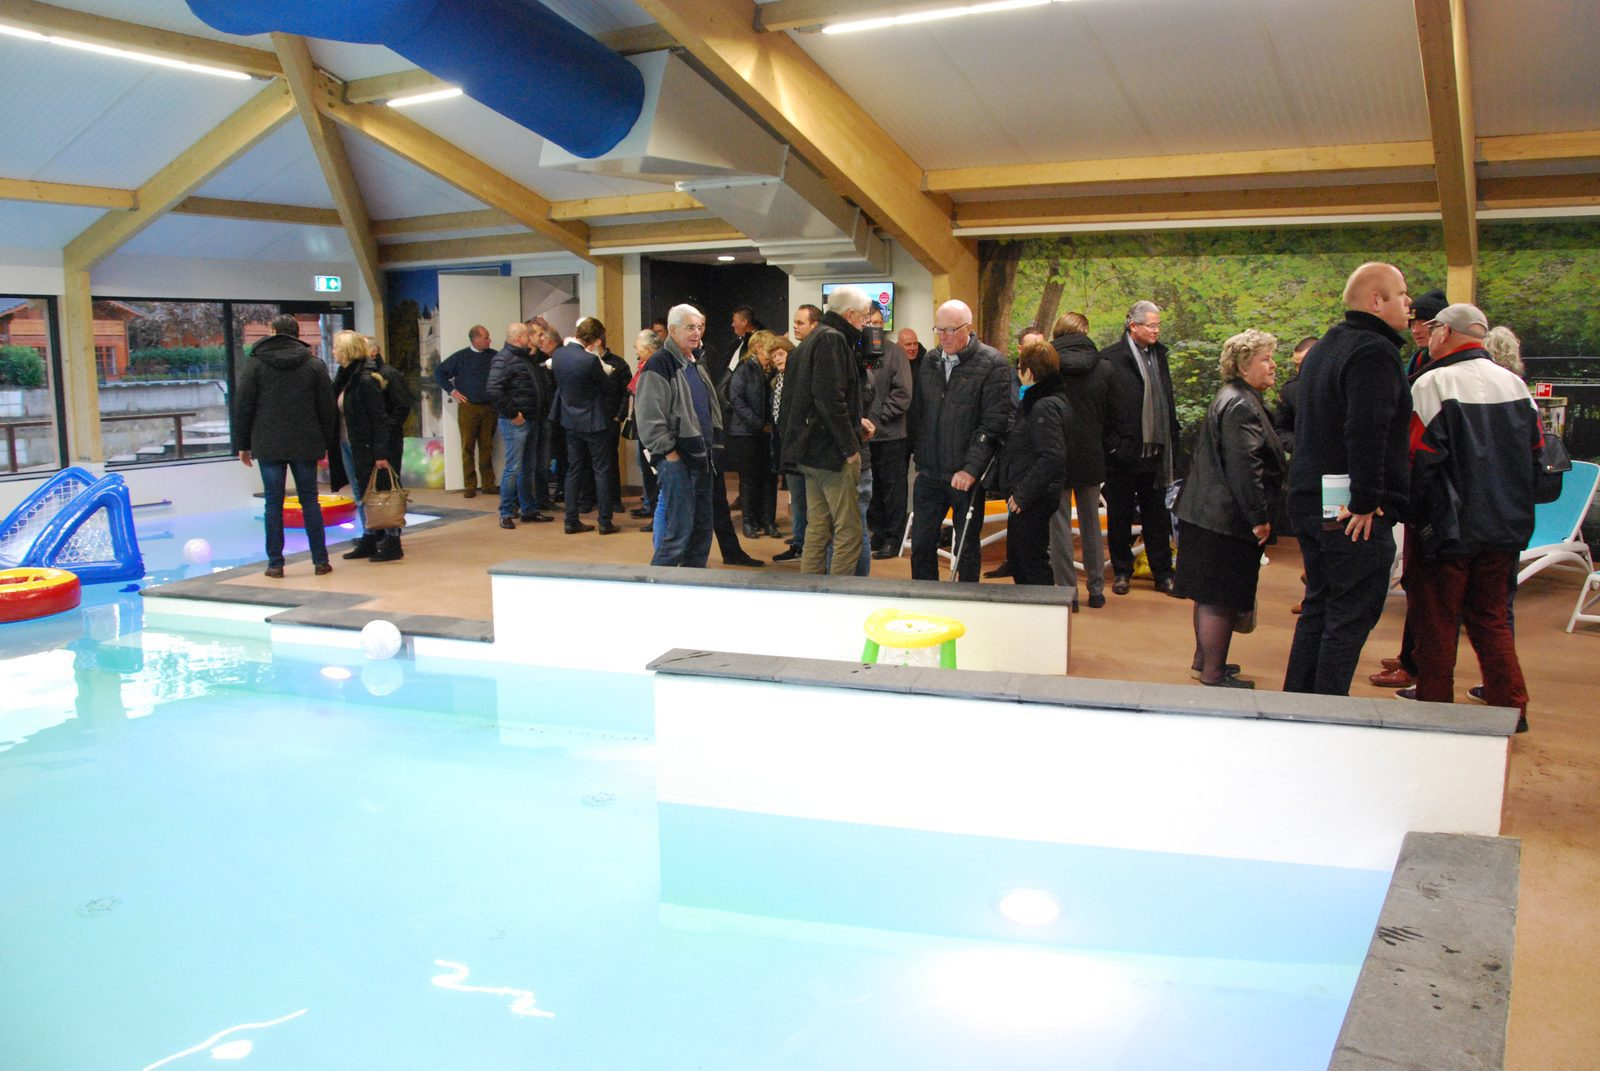 Indoor swimming pool at Resort de Achterhoek festively opened